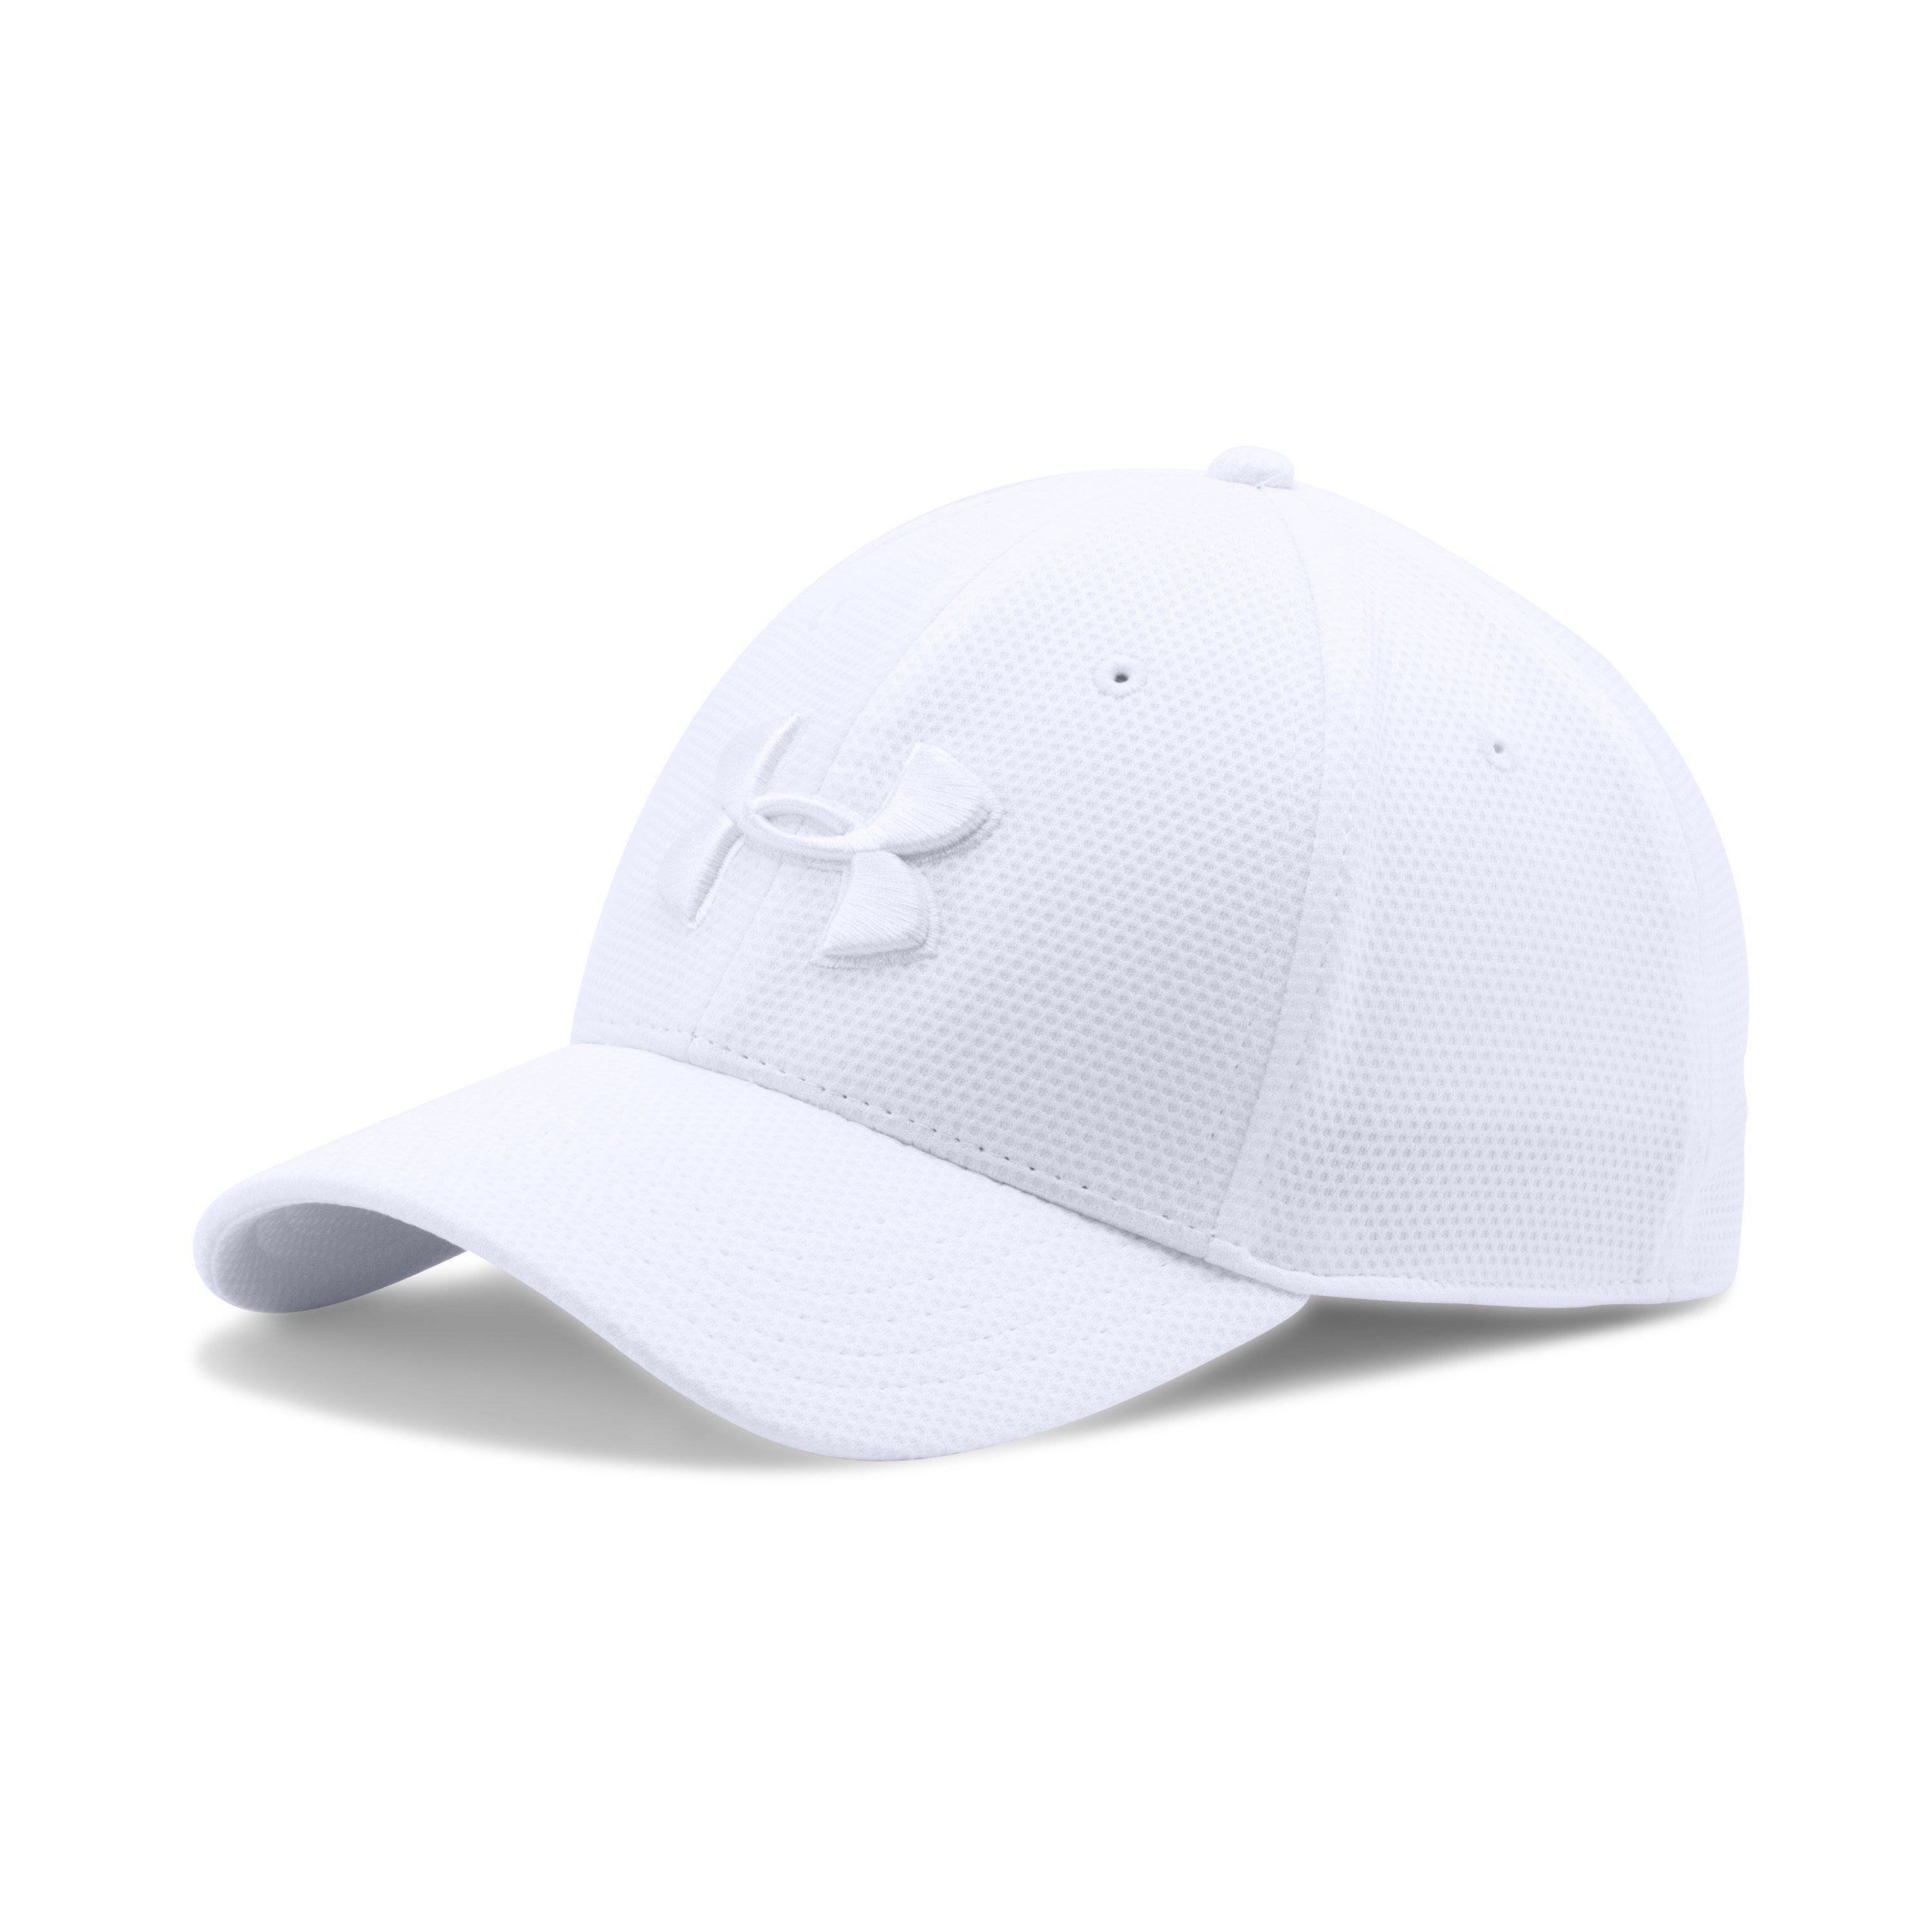 White Under Sink Bathroom Cabinet Undersink Storage: Under Armour Men's Ua Blitzing Ii Stretch Fit Cap